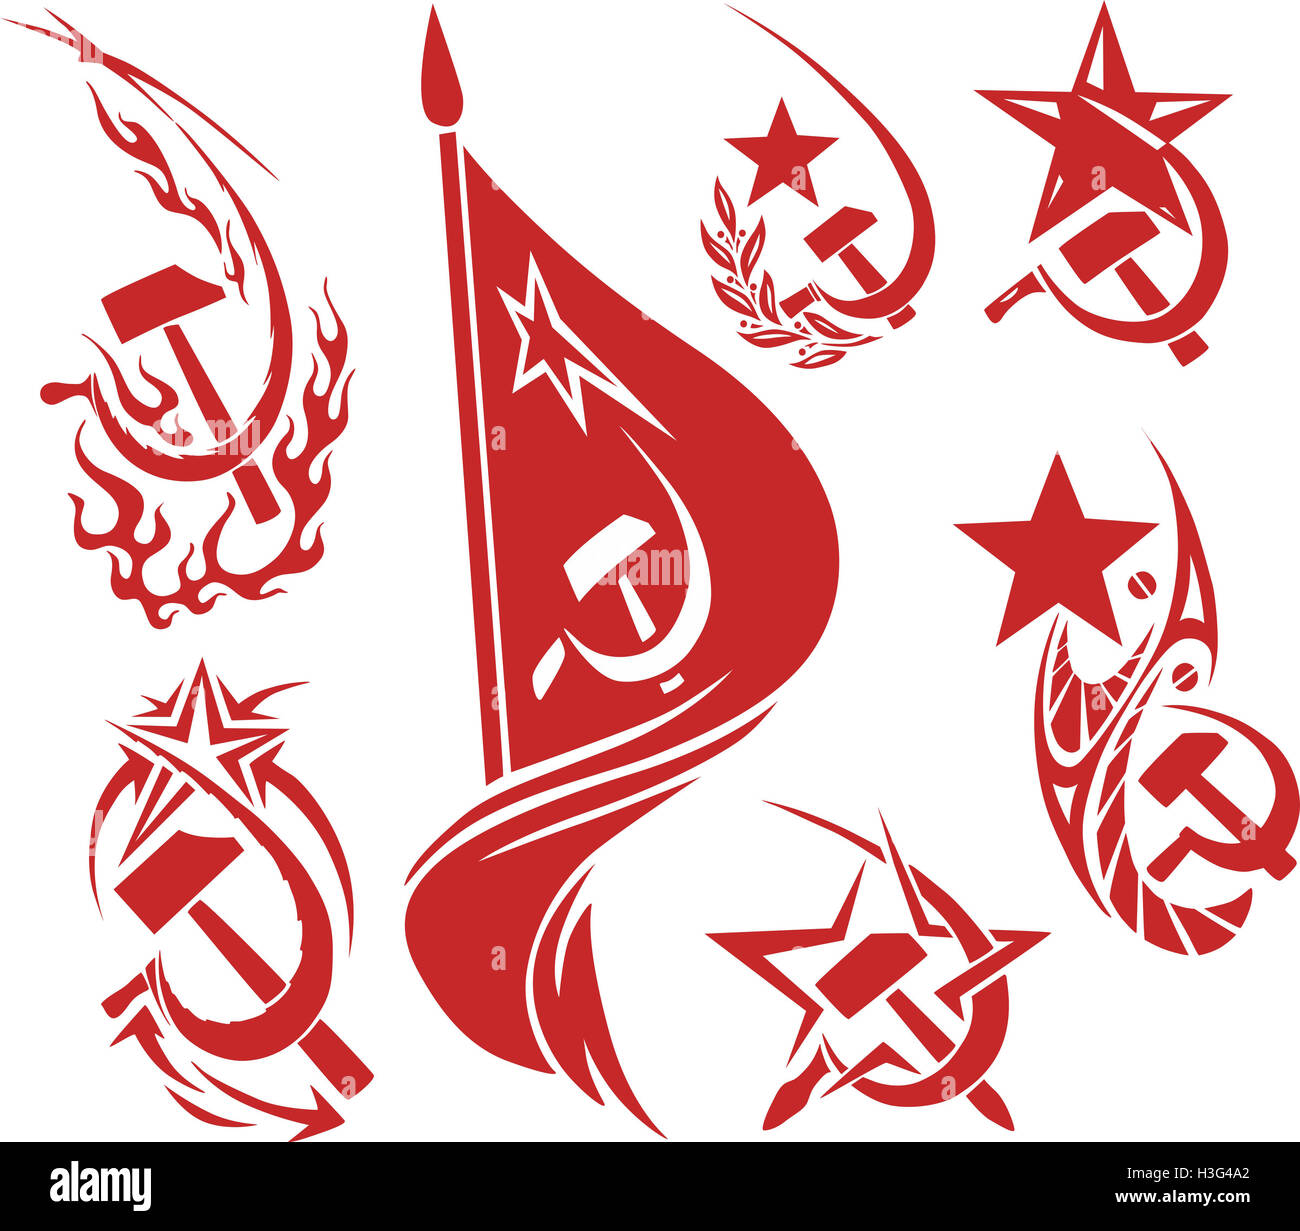 Communist symbols flag stock photos communist symbols flag stock set of red color soviet symbols with stars flags and sickle and hammer stock biocorpaavc